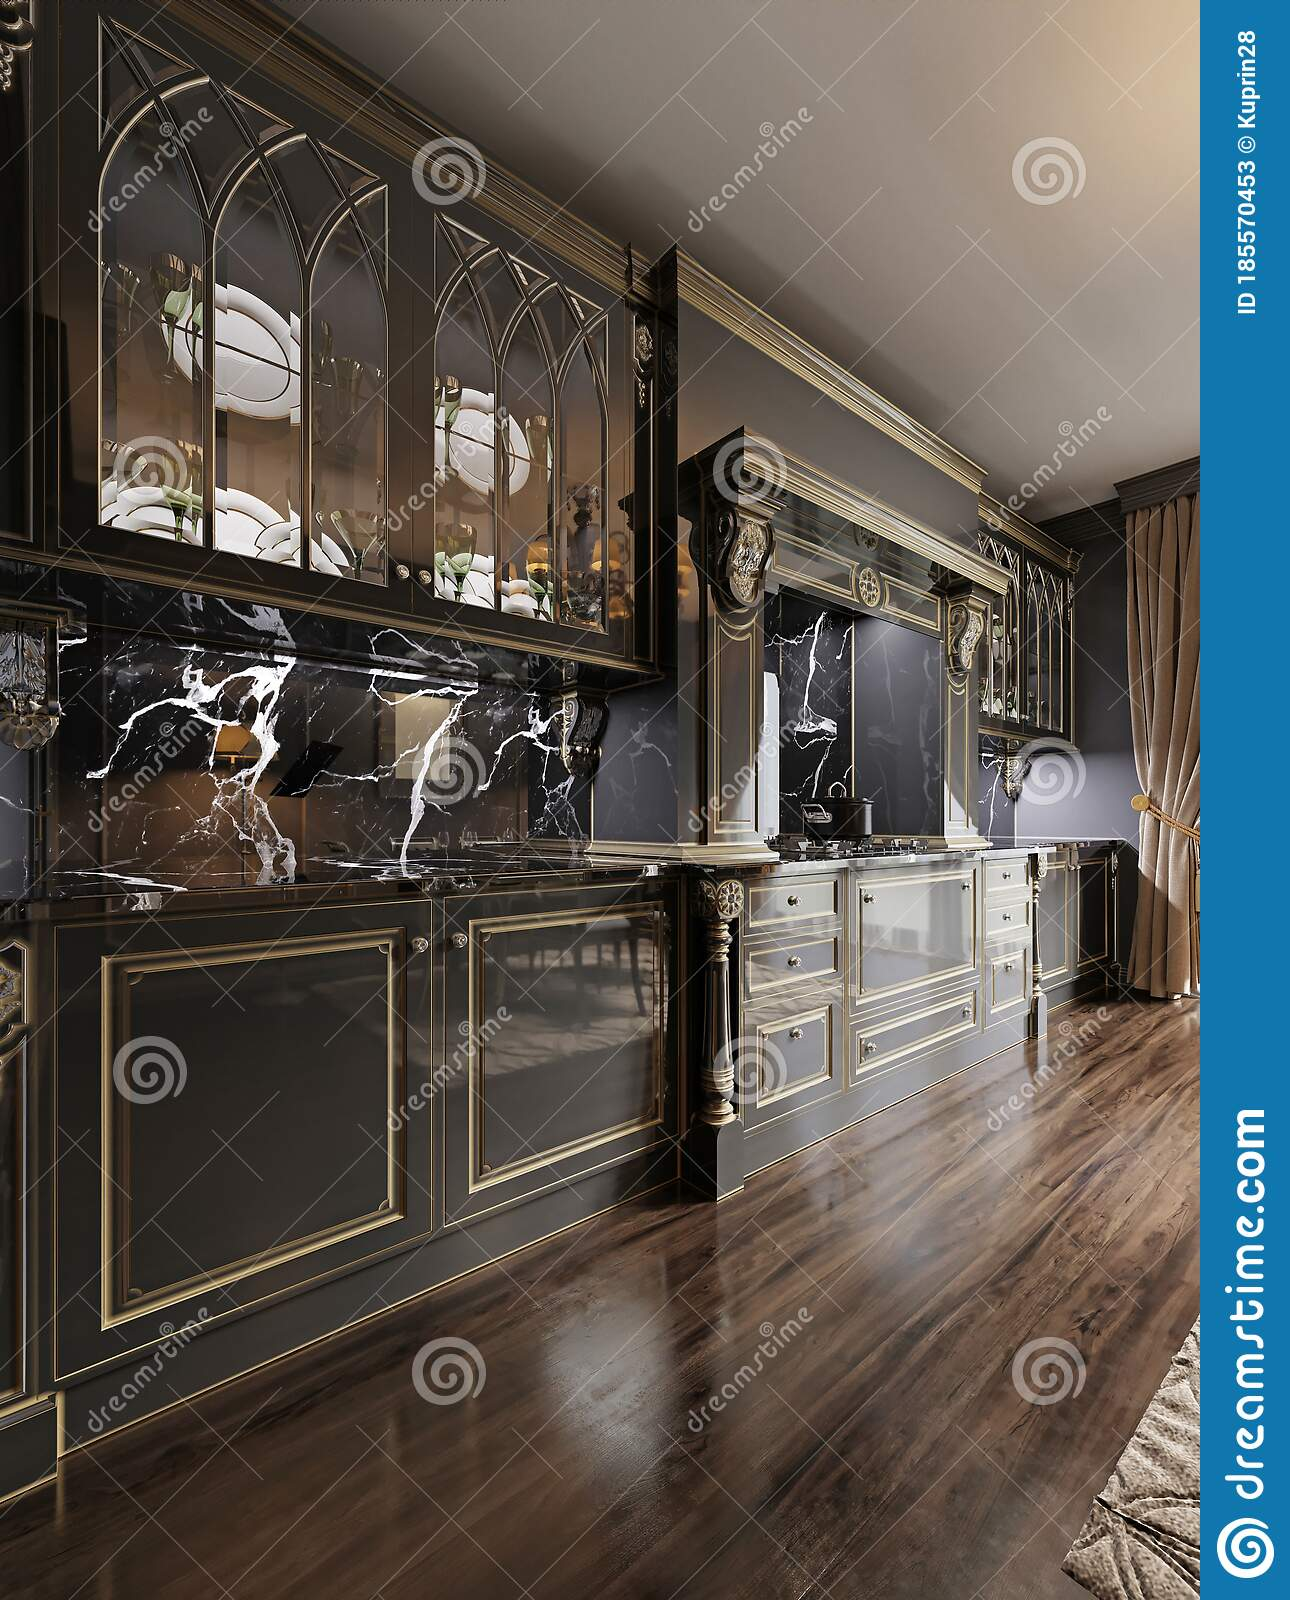 Luxurious Baroque Style Kitchen Furniture Design Black Marble Kitchen Apron And Black Patel Meel Stock Illustration Illustration Of Appliance Cabinet 185570453